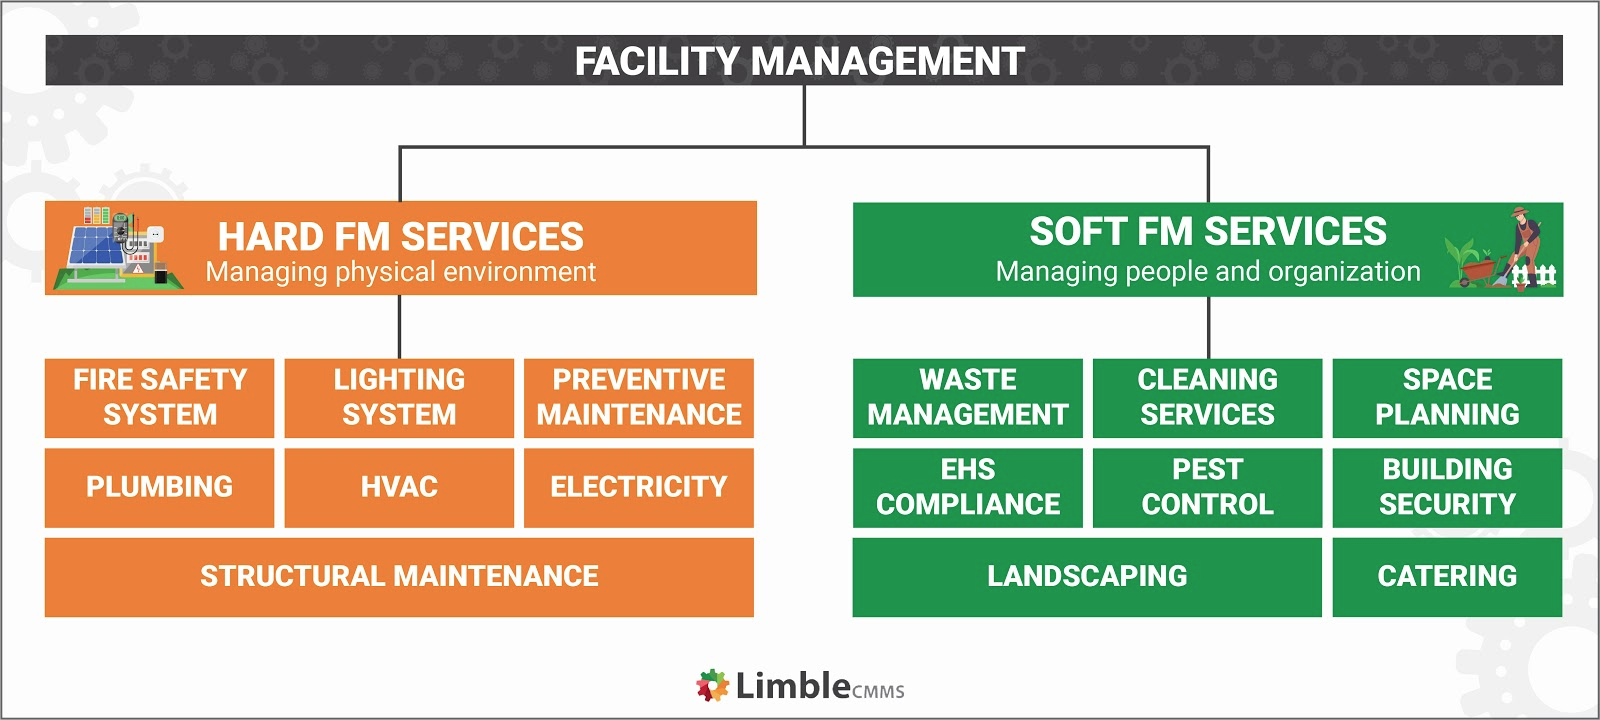 The role of maintenance in facility management